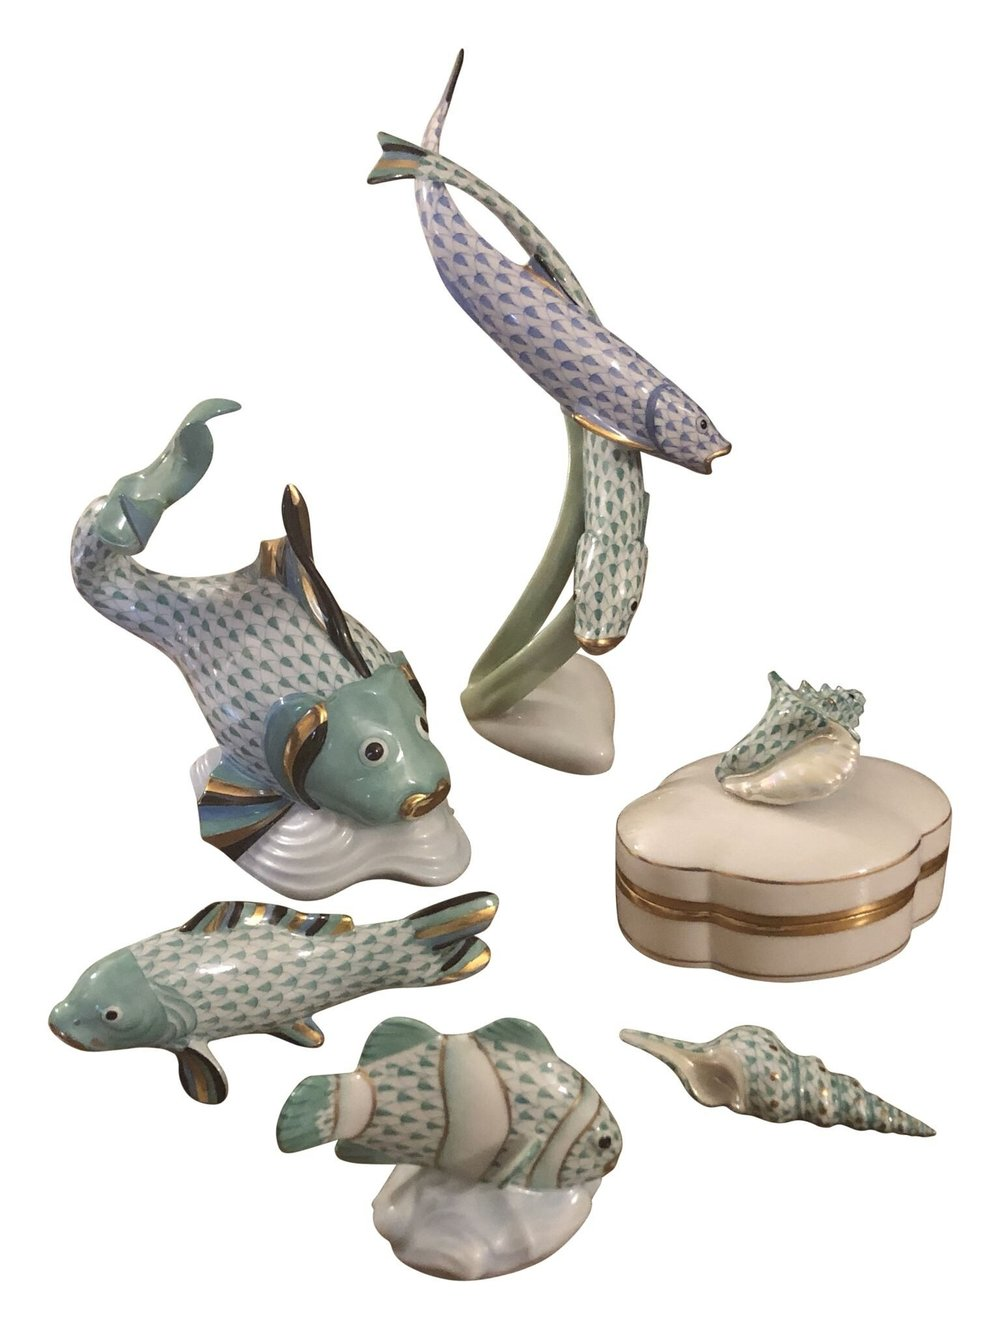 From under the sea to under the tree! These elegant hand painted figurines from Herend will be a gift that is cherished for years to come. Don't wait on these gorgeous hand painted beauties, the price is right and the timing could not be better. $1,770.